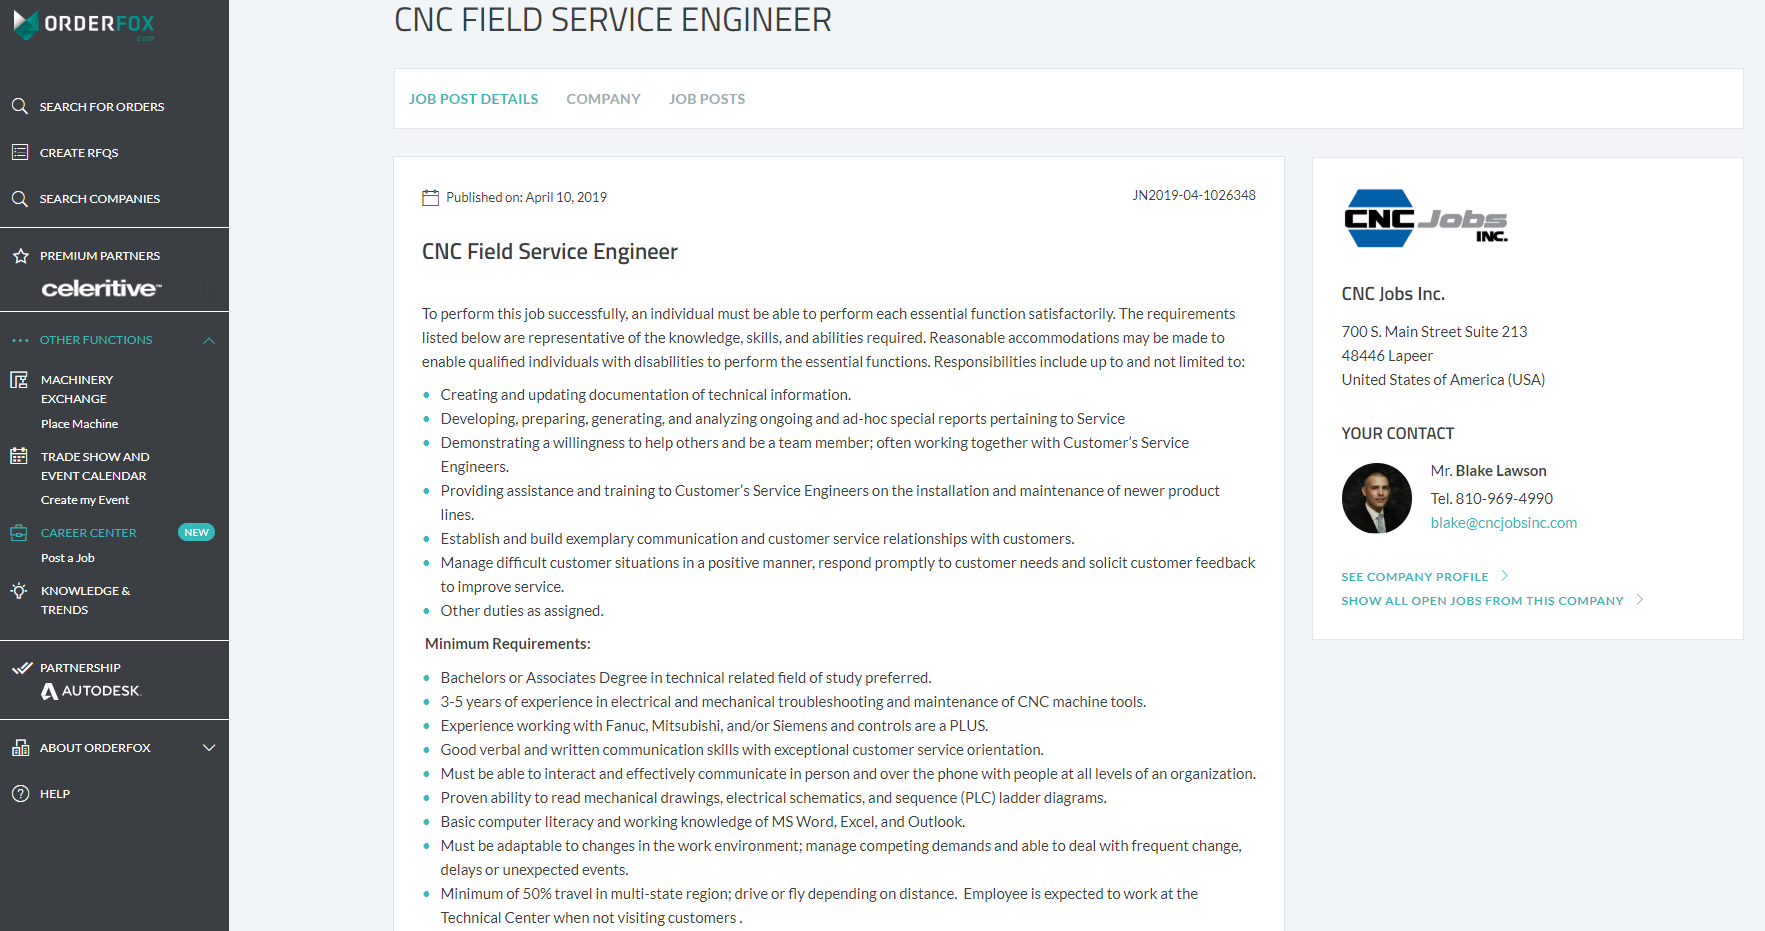 One of 100's of available U.S. specific job opportunities posted by CNC Jobs Inc. within the New ORDERFOX.com Career Center.